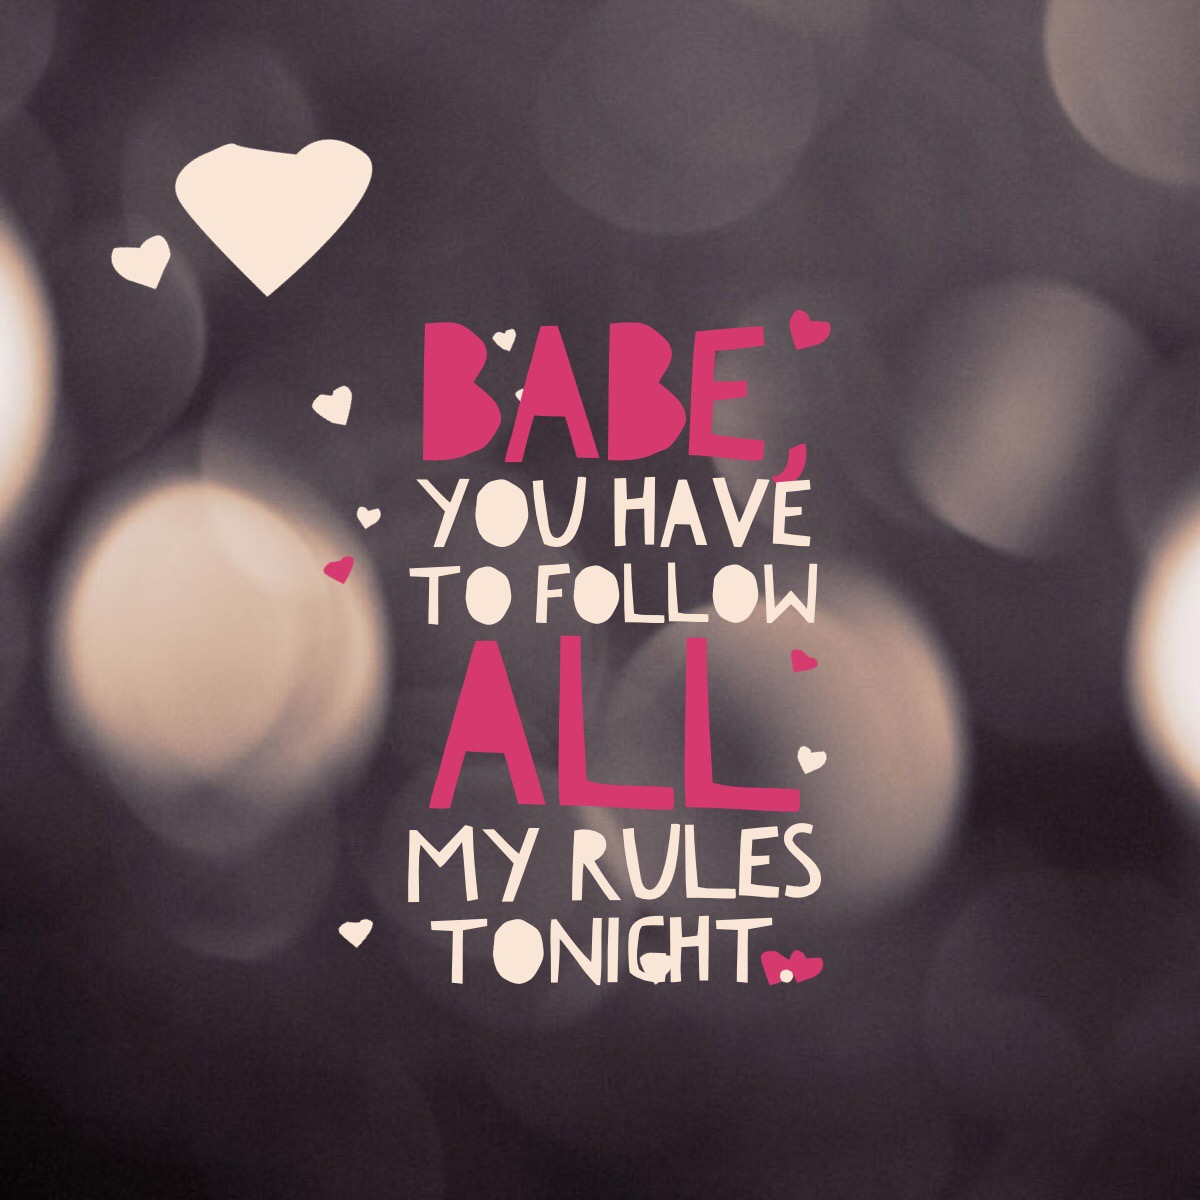 baby, you have to follow all my rules tonight